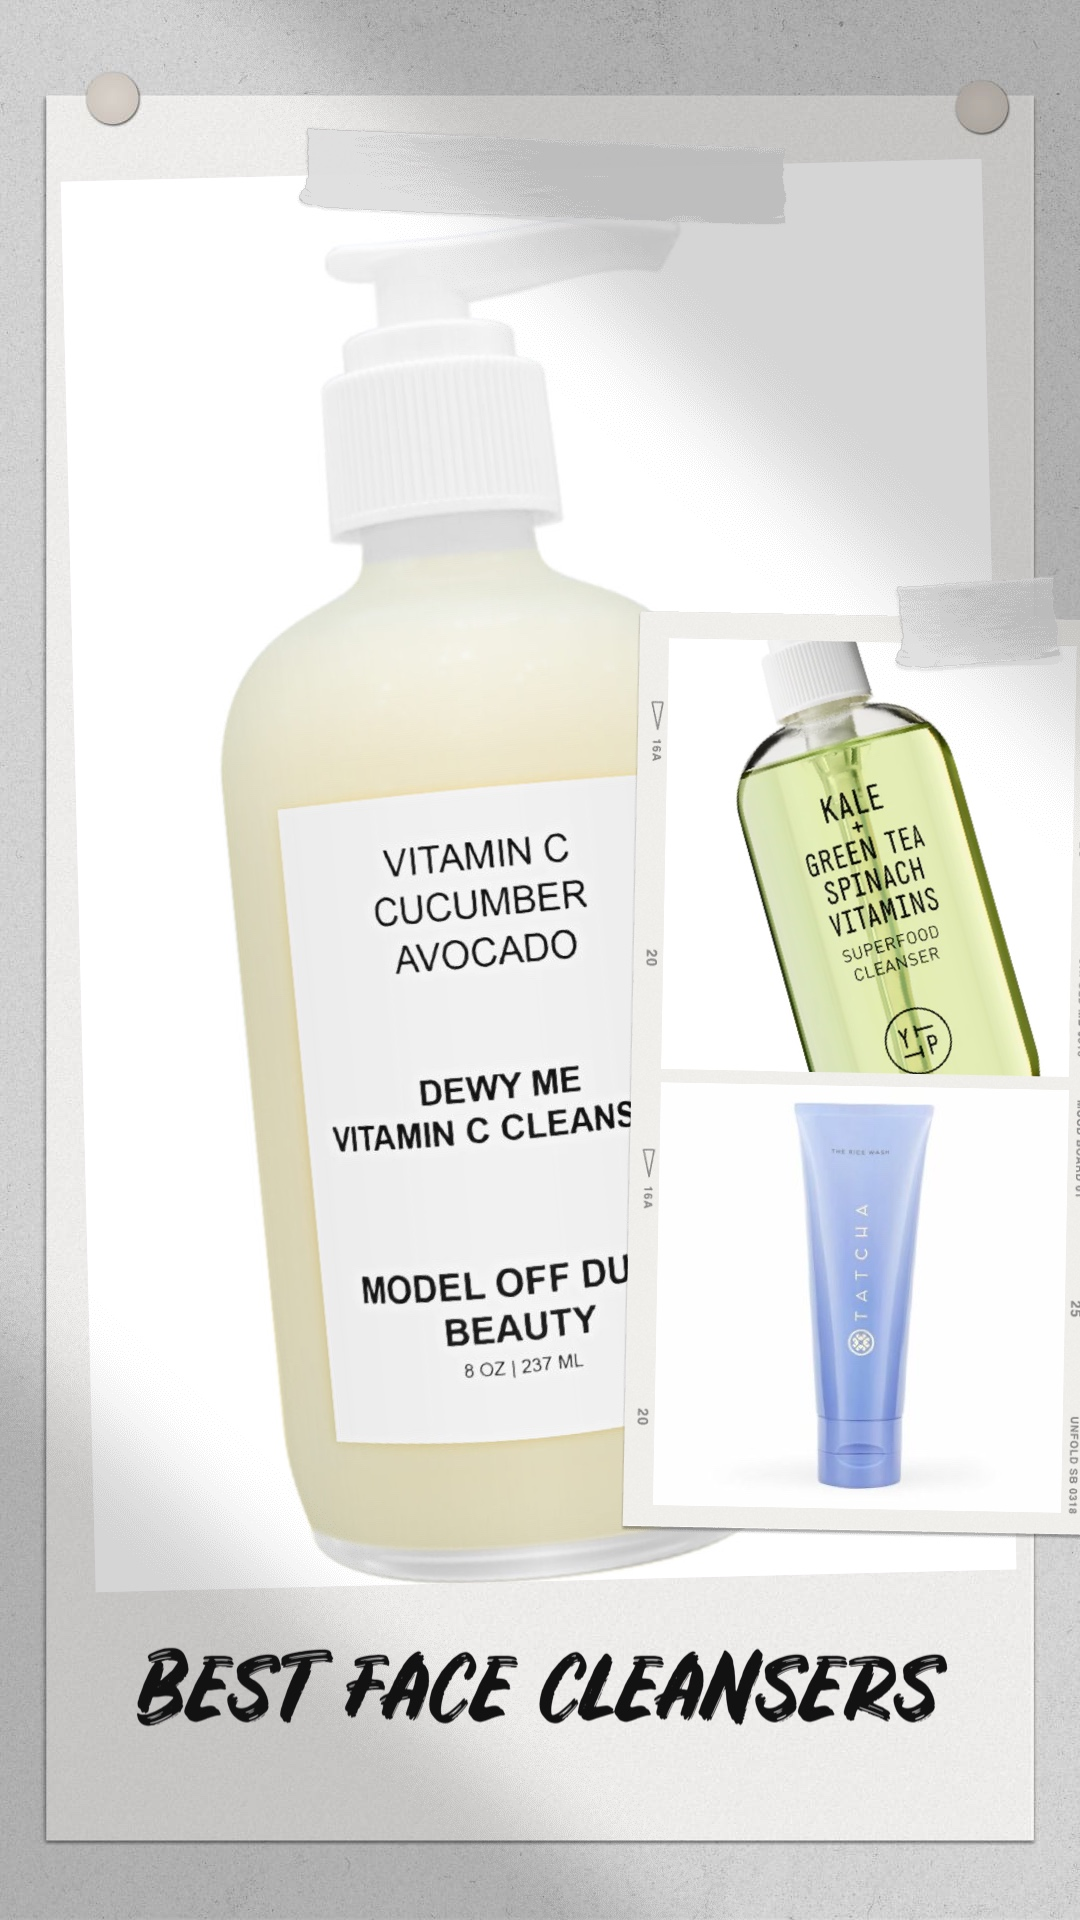 Best cleansers to use with clarisonic Mia